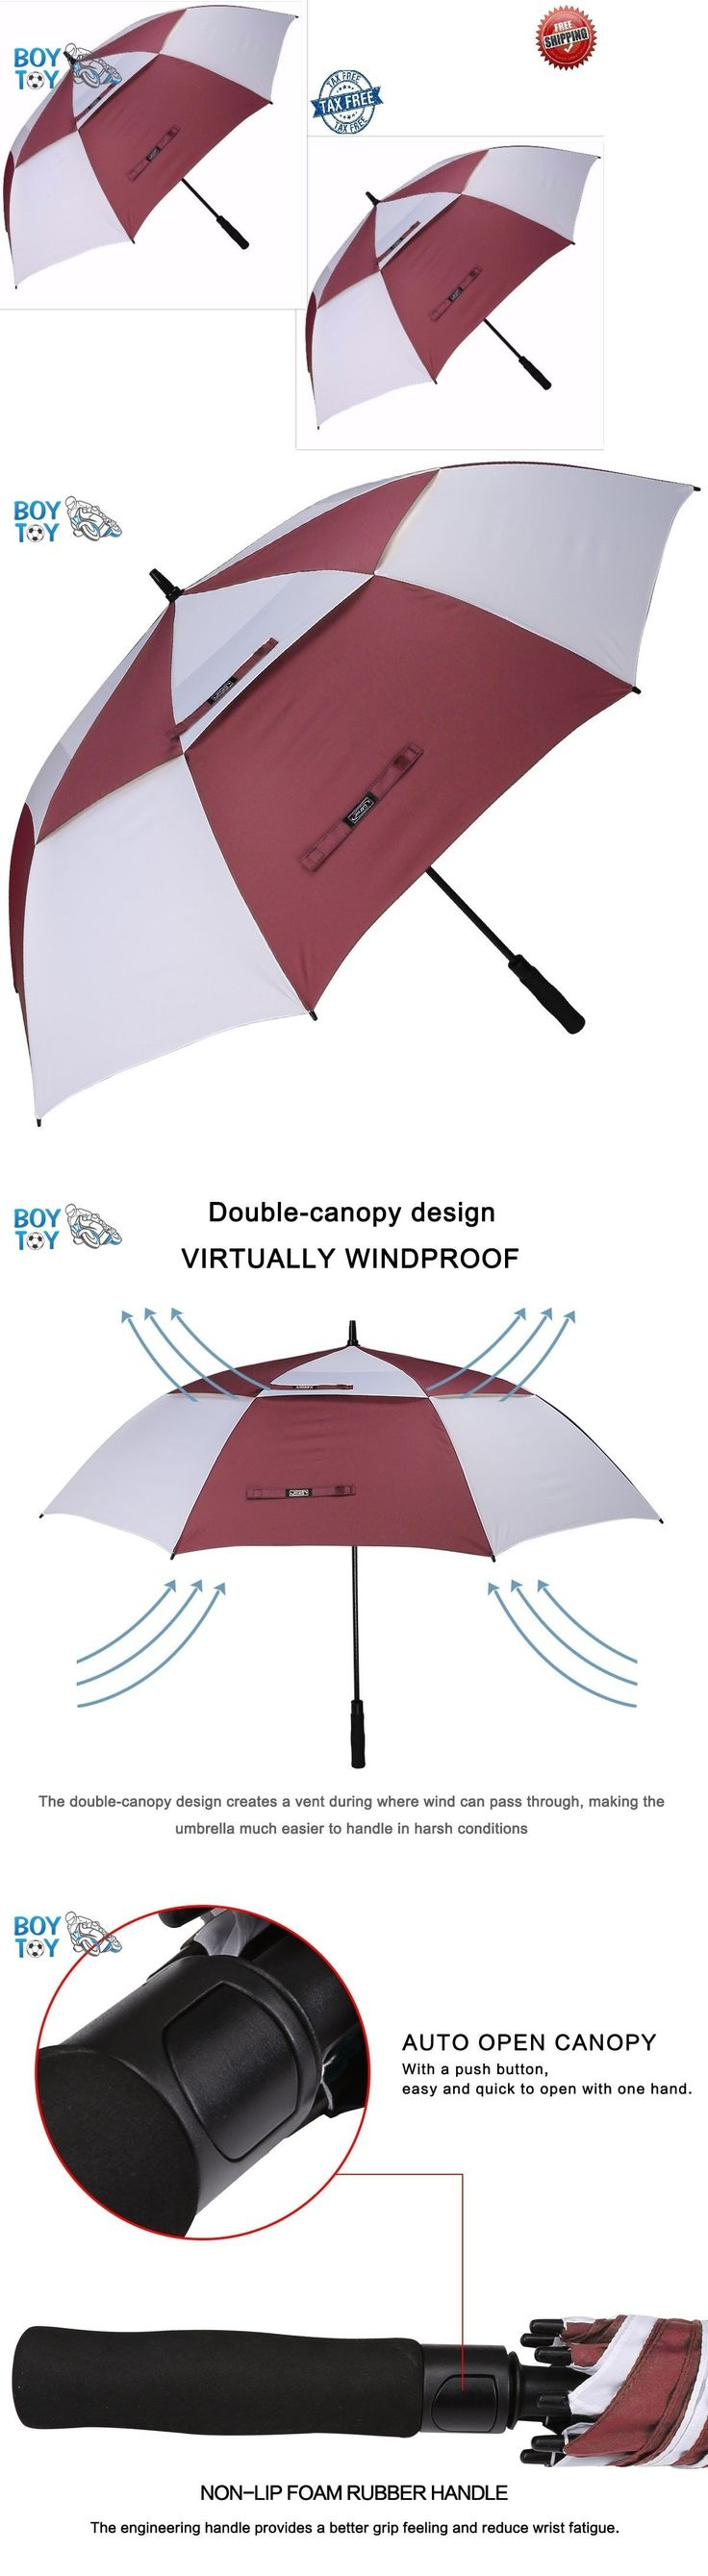 Golf Umbrellas 18933: Automatic Open Golf Umbrella Extra Large Oversize Double Canopy Waterproof Wine -> BUY IT NOW ONLY: $32.49 on eBay!